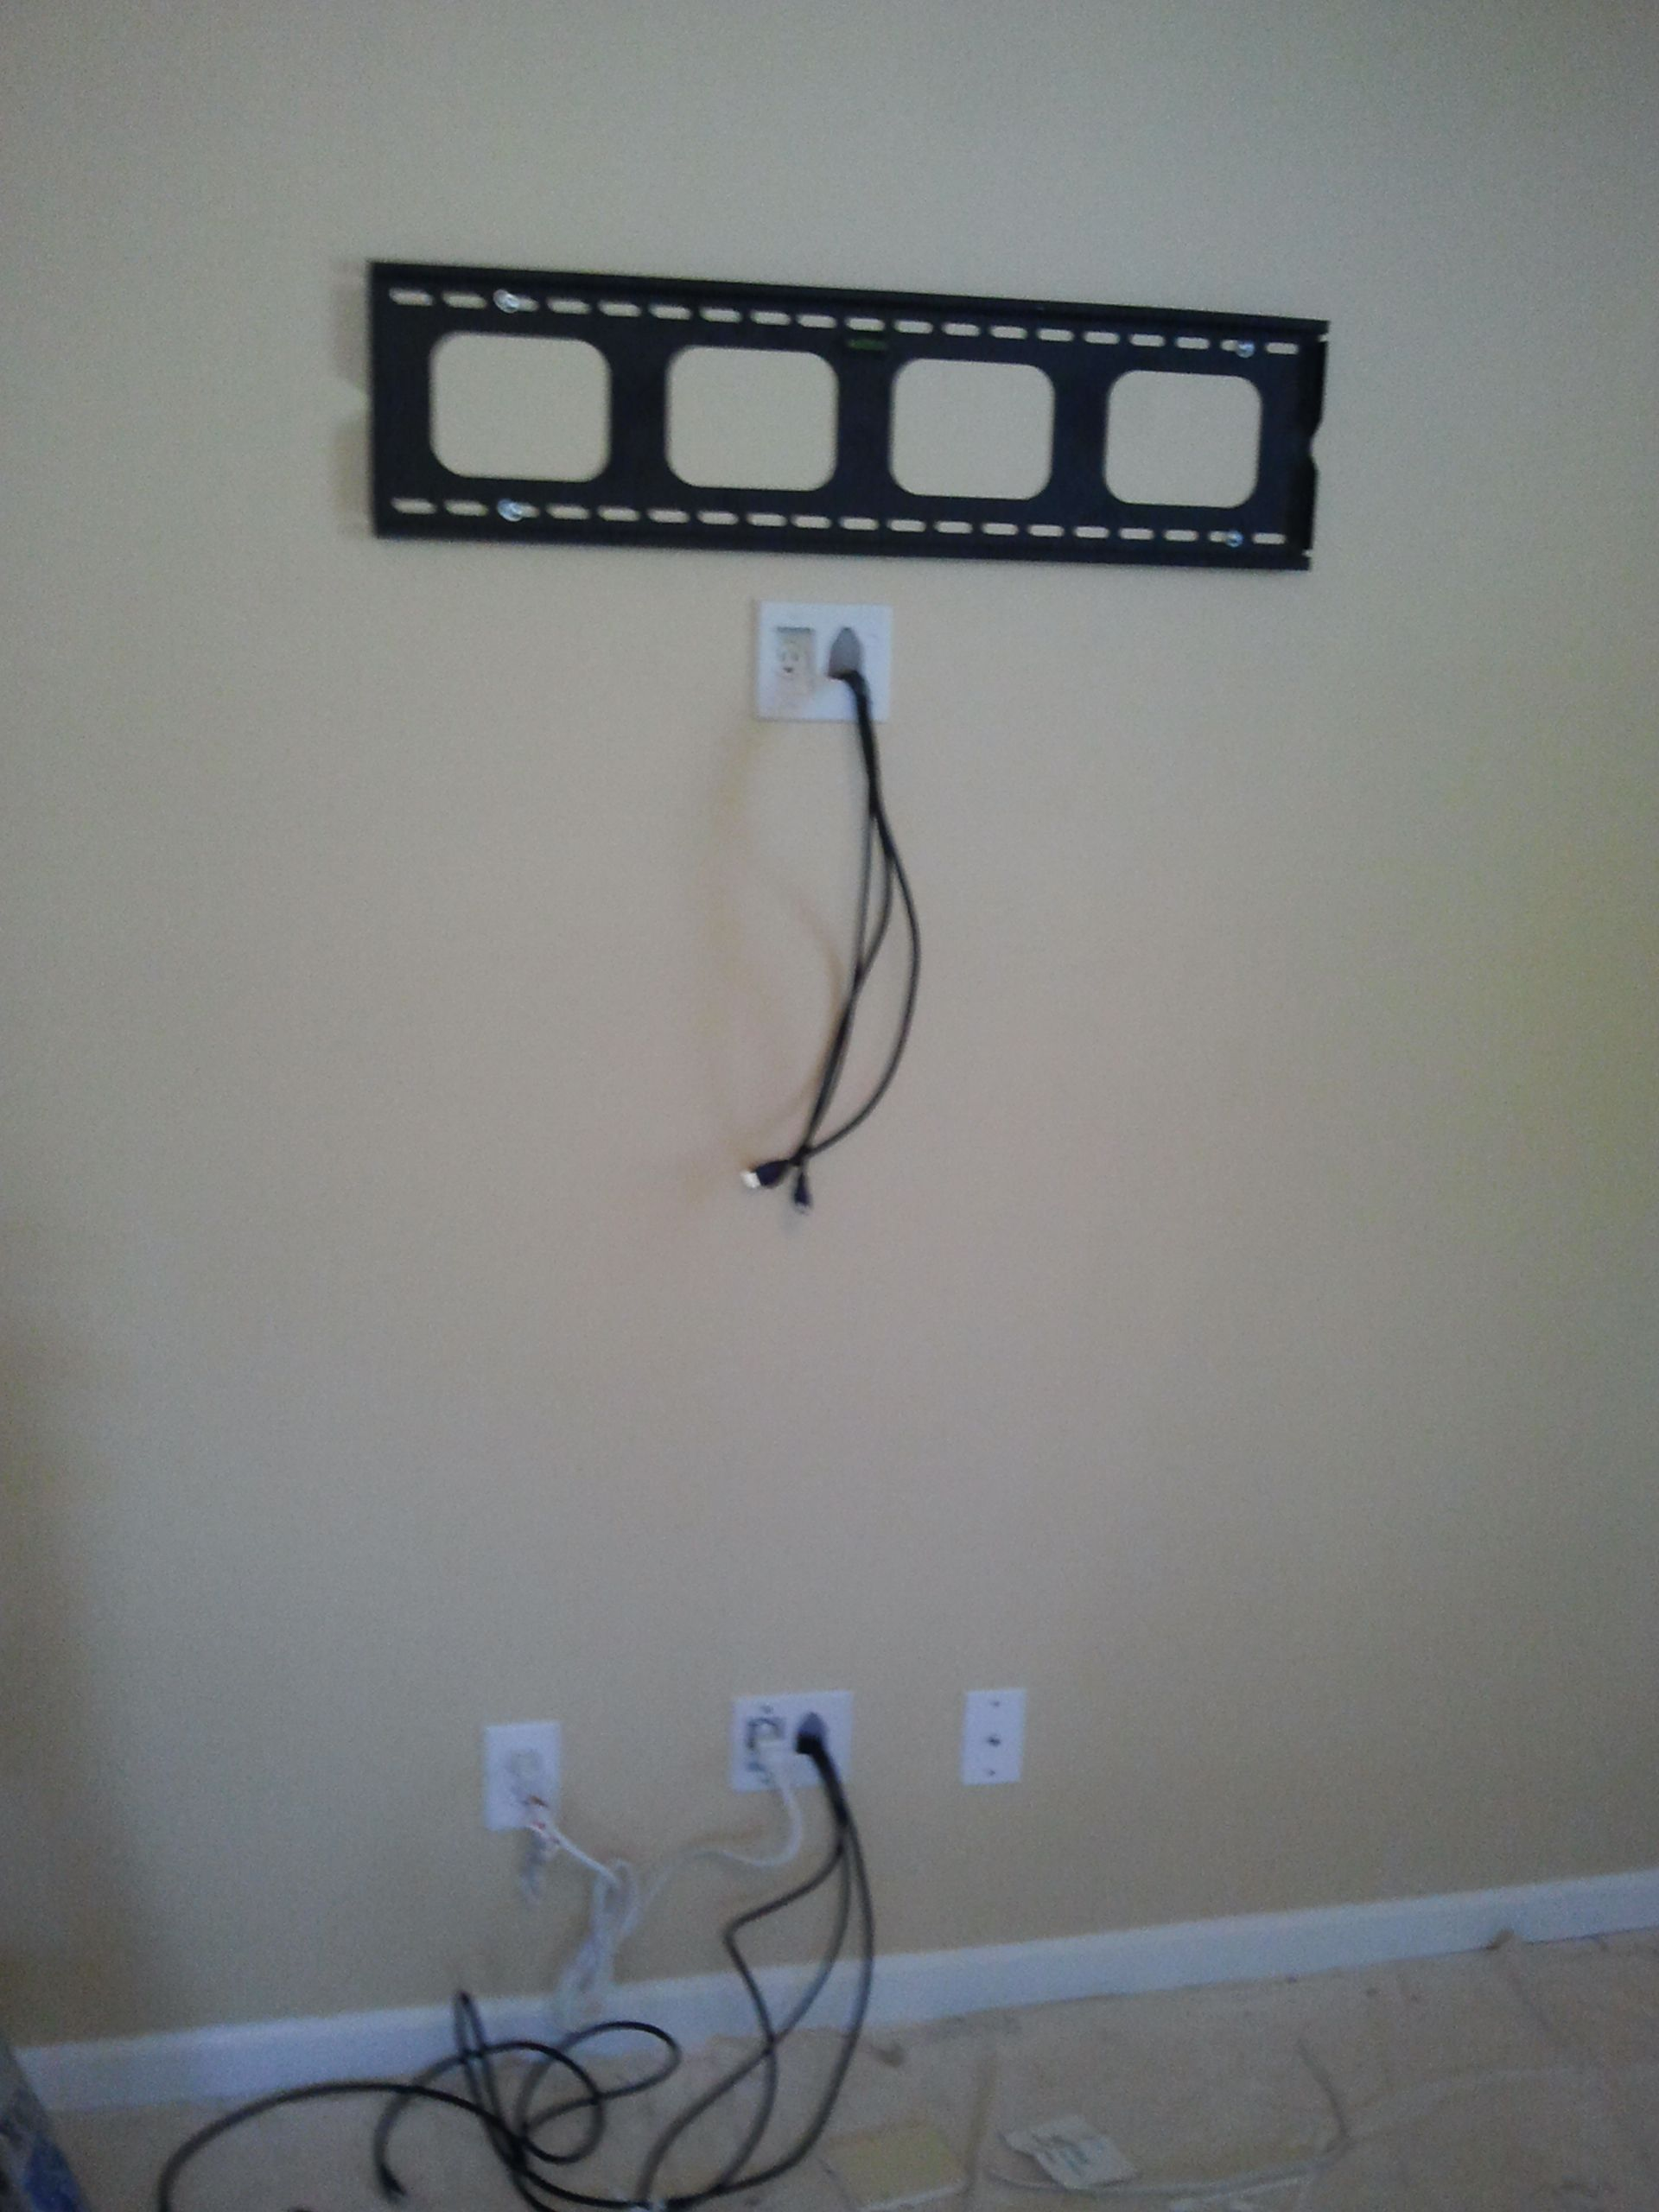 Concealing Wires In The Wall And Extending Electrical Outlet To Wiring Basement Walls Back Of Tv